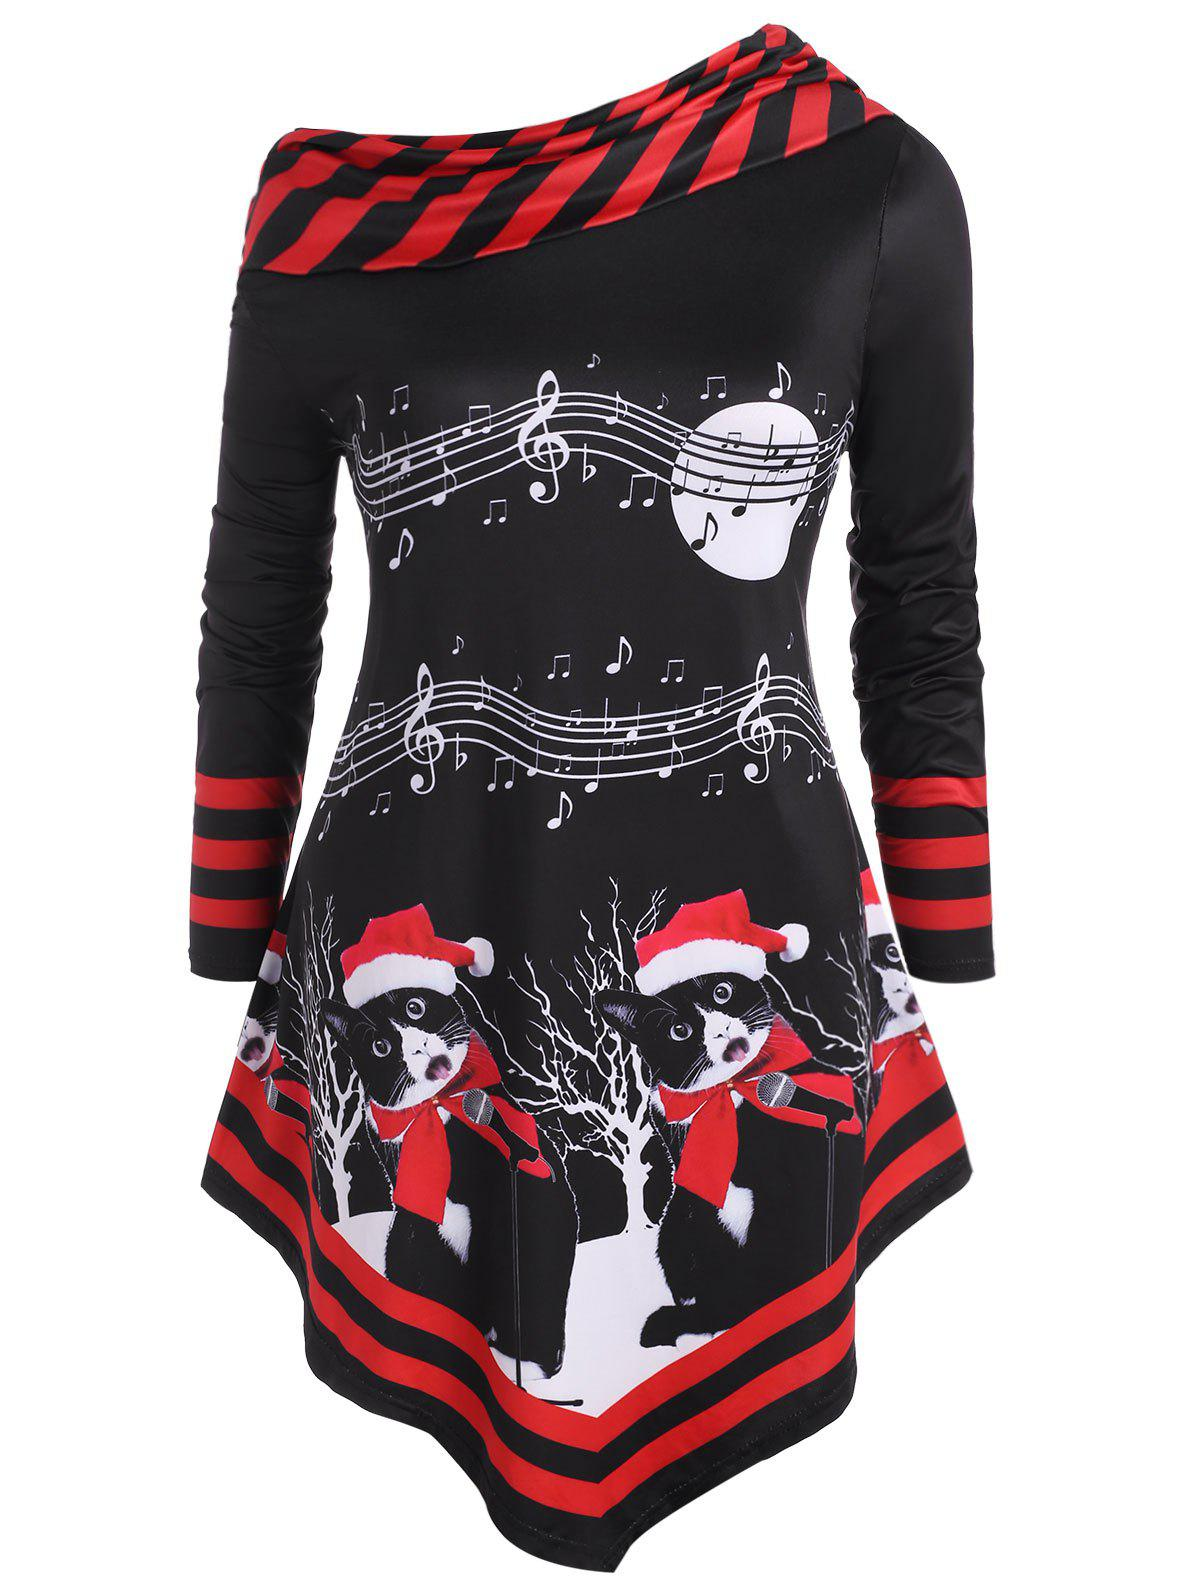 Christmas Cat Stripes Panel Musical Note Print Plus Size Top - RED 5X